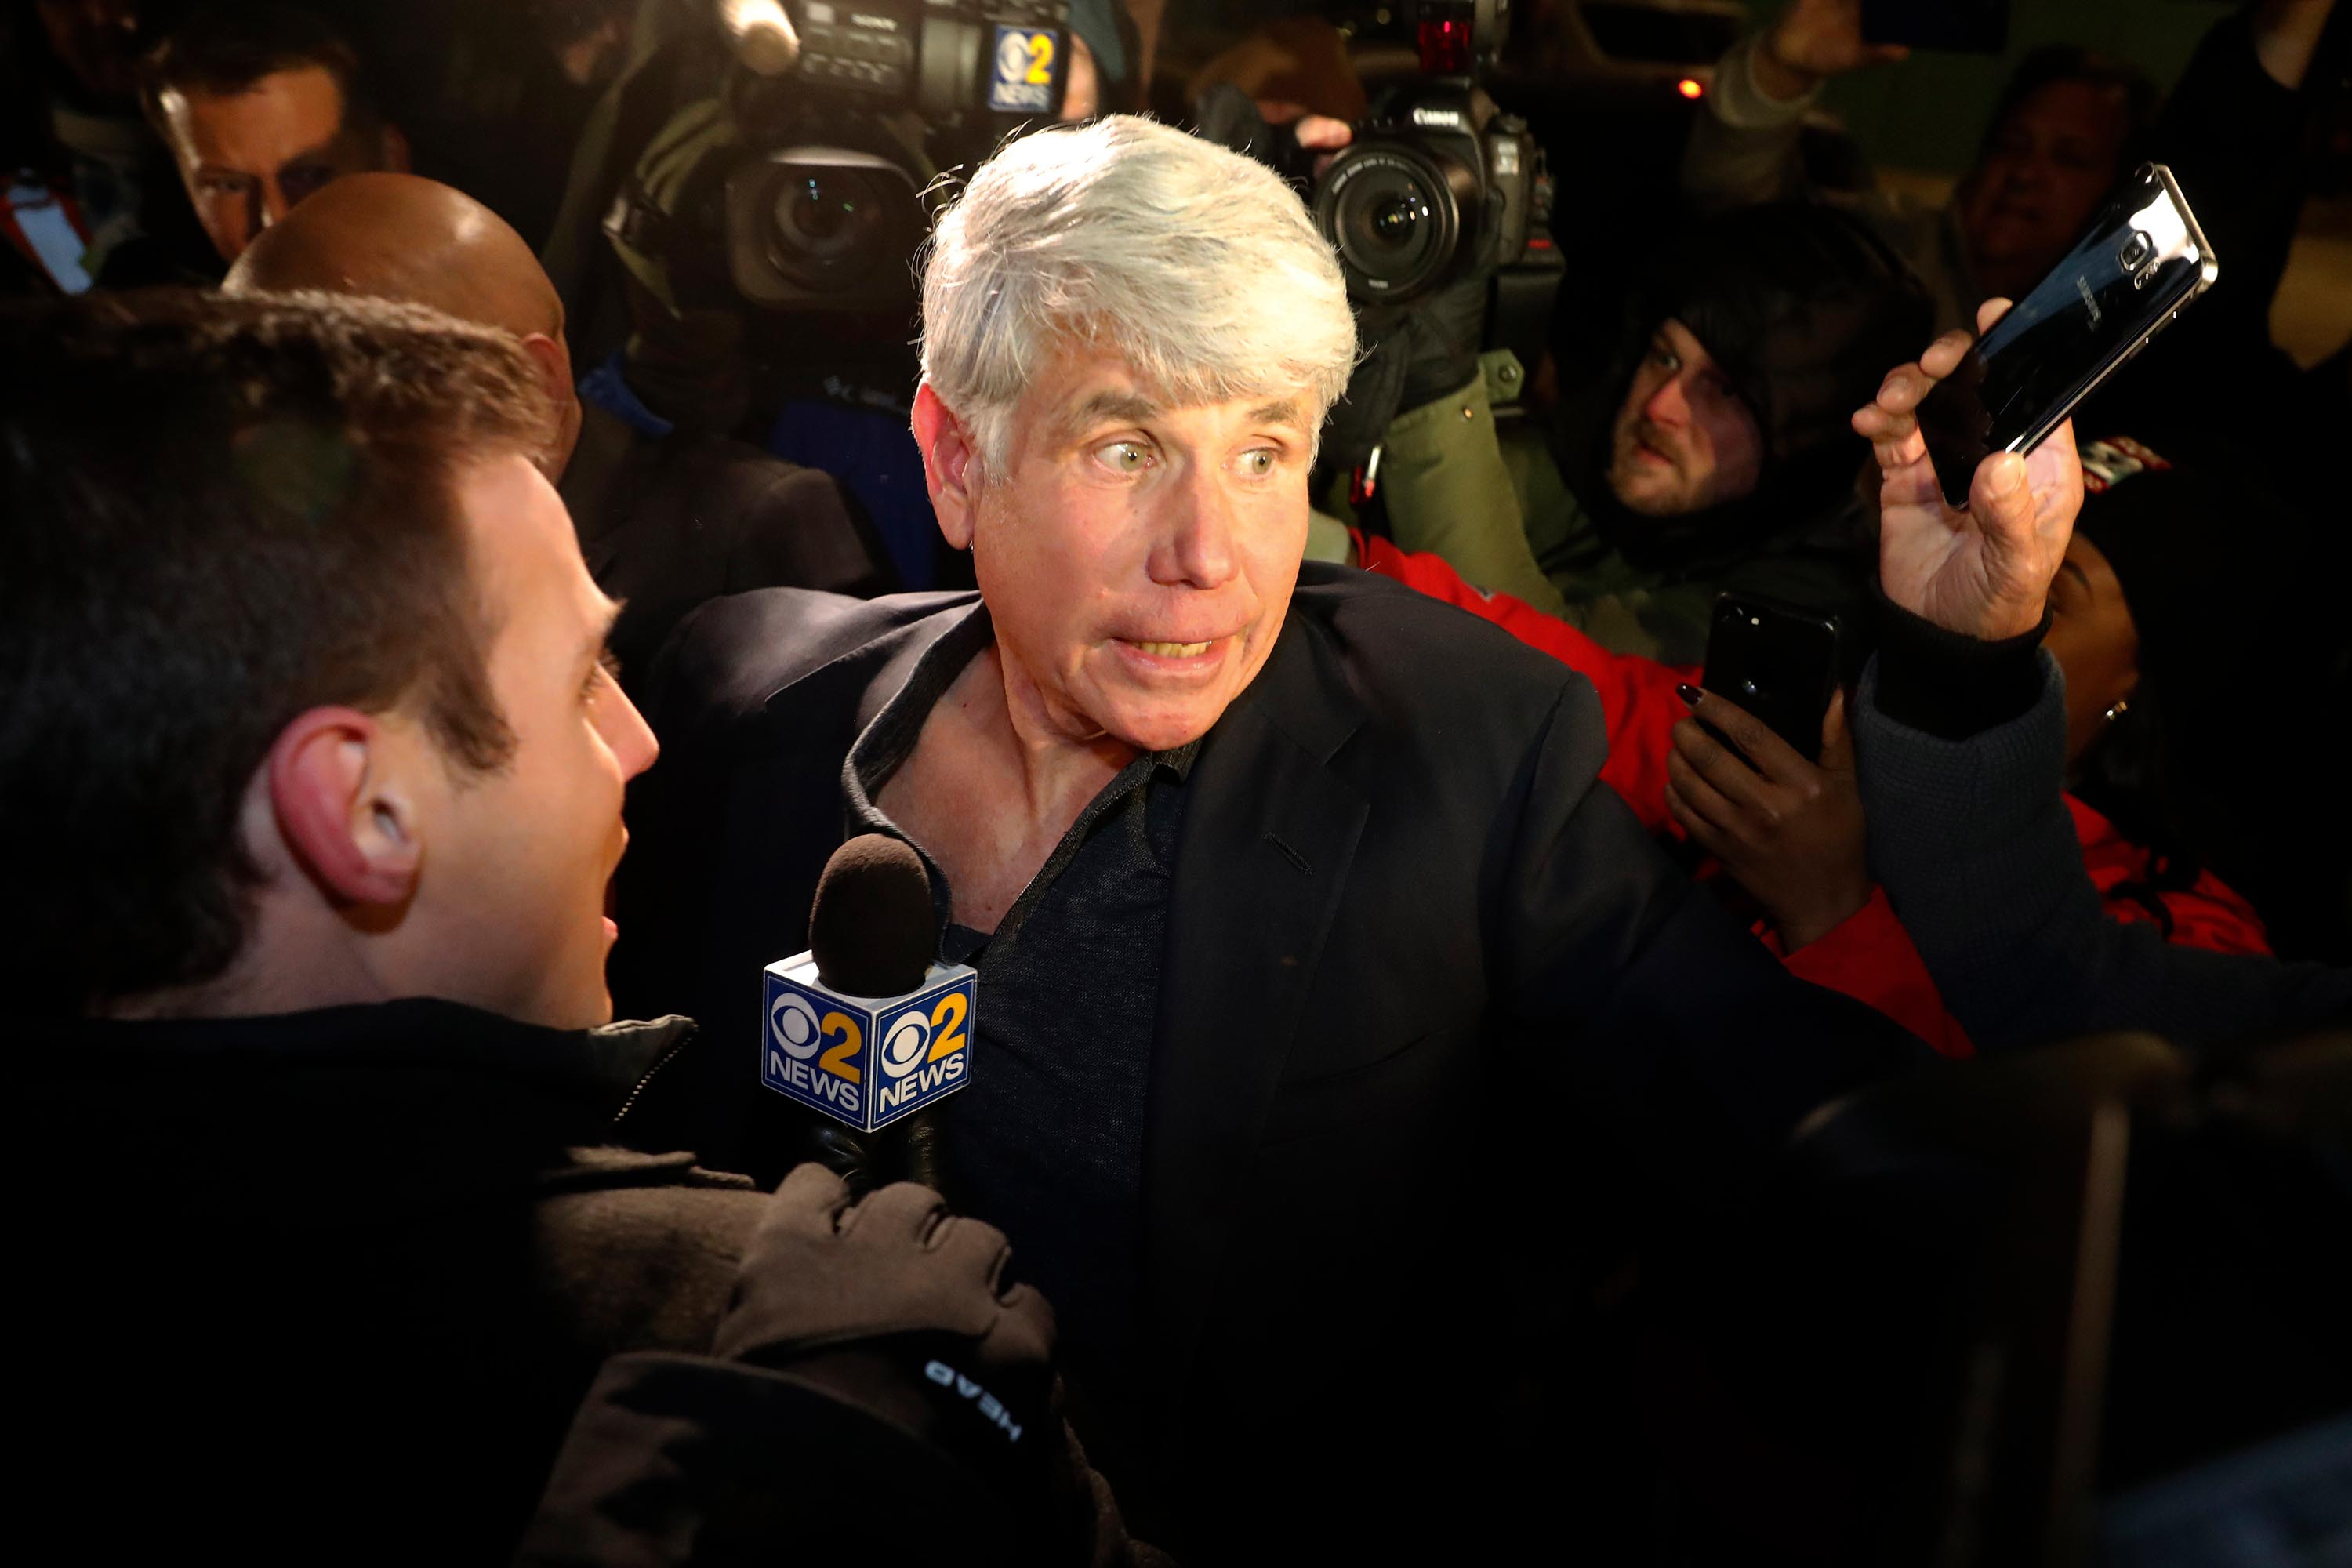 Rod Blagojevich is charging $100 for personalized shout-outs on Cameo